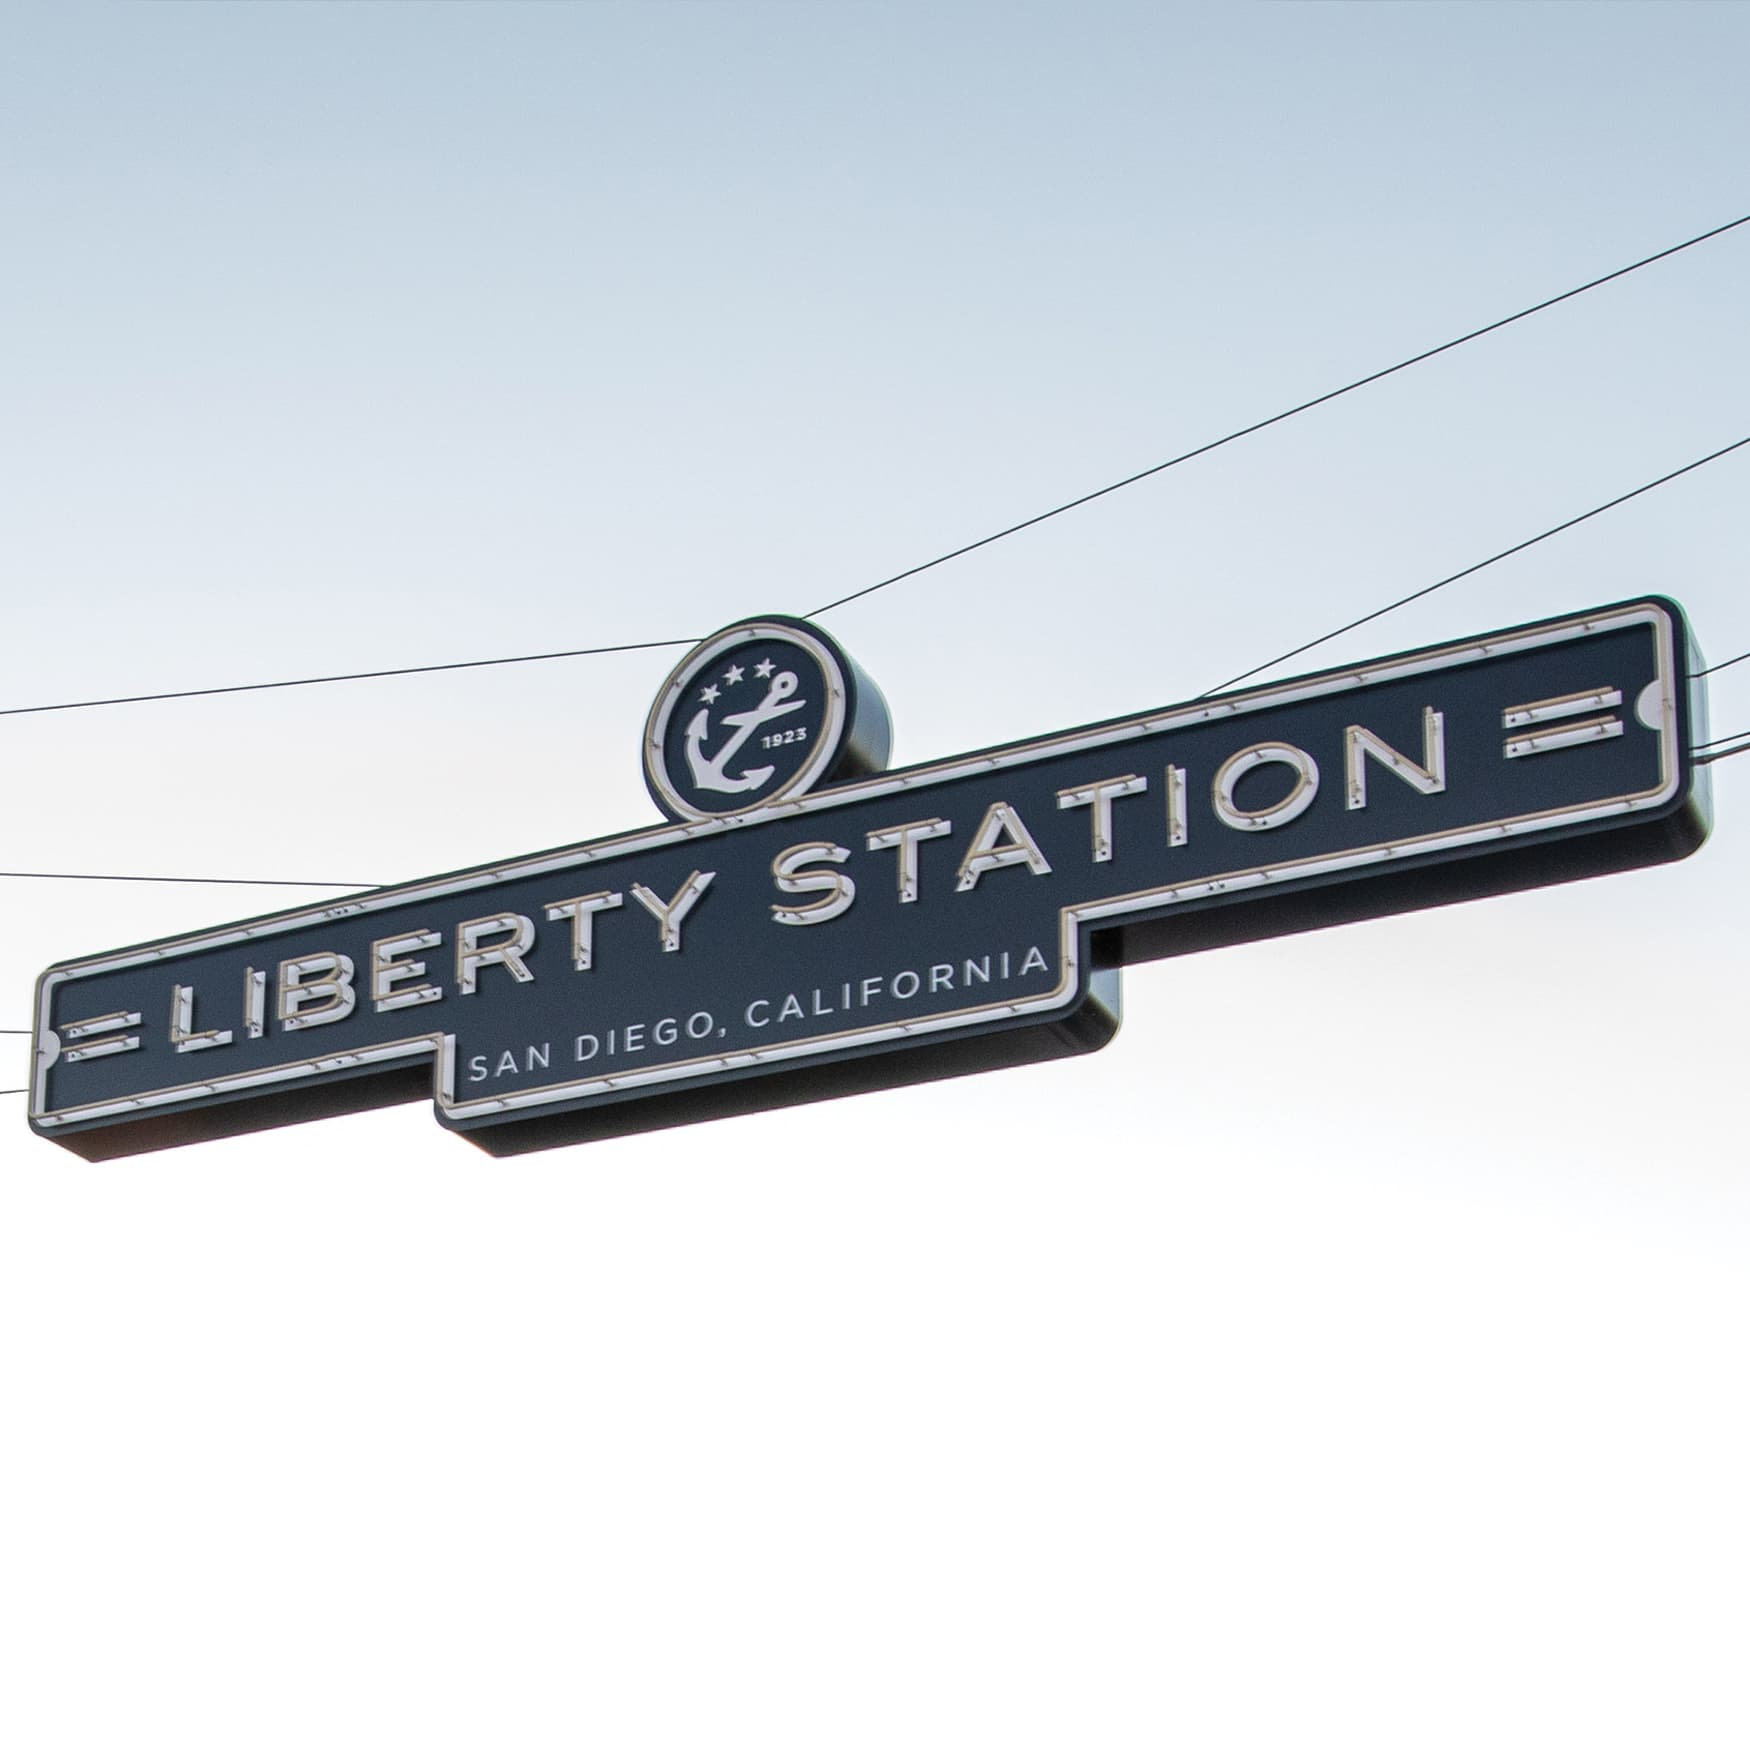 Liberty Station entrance neon signage suspended across the street